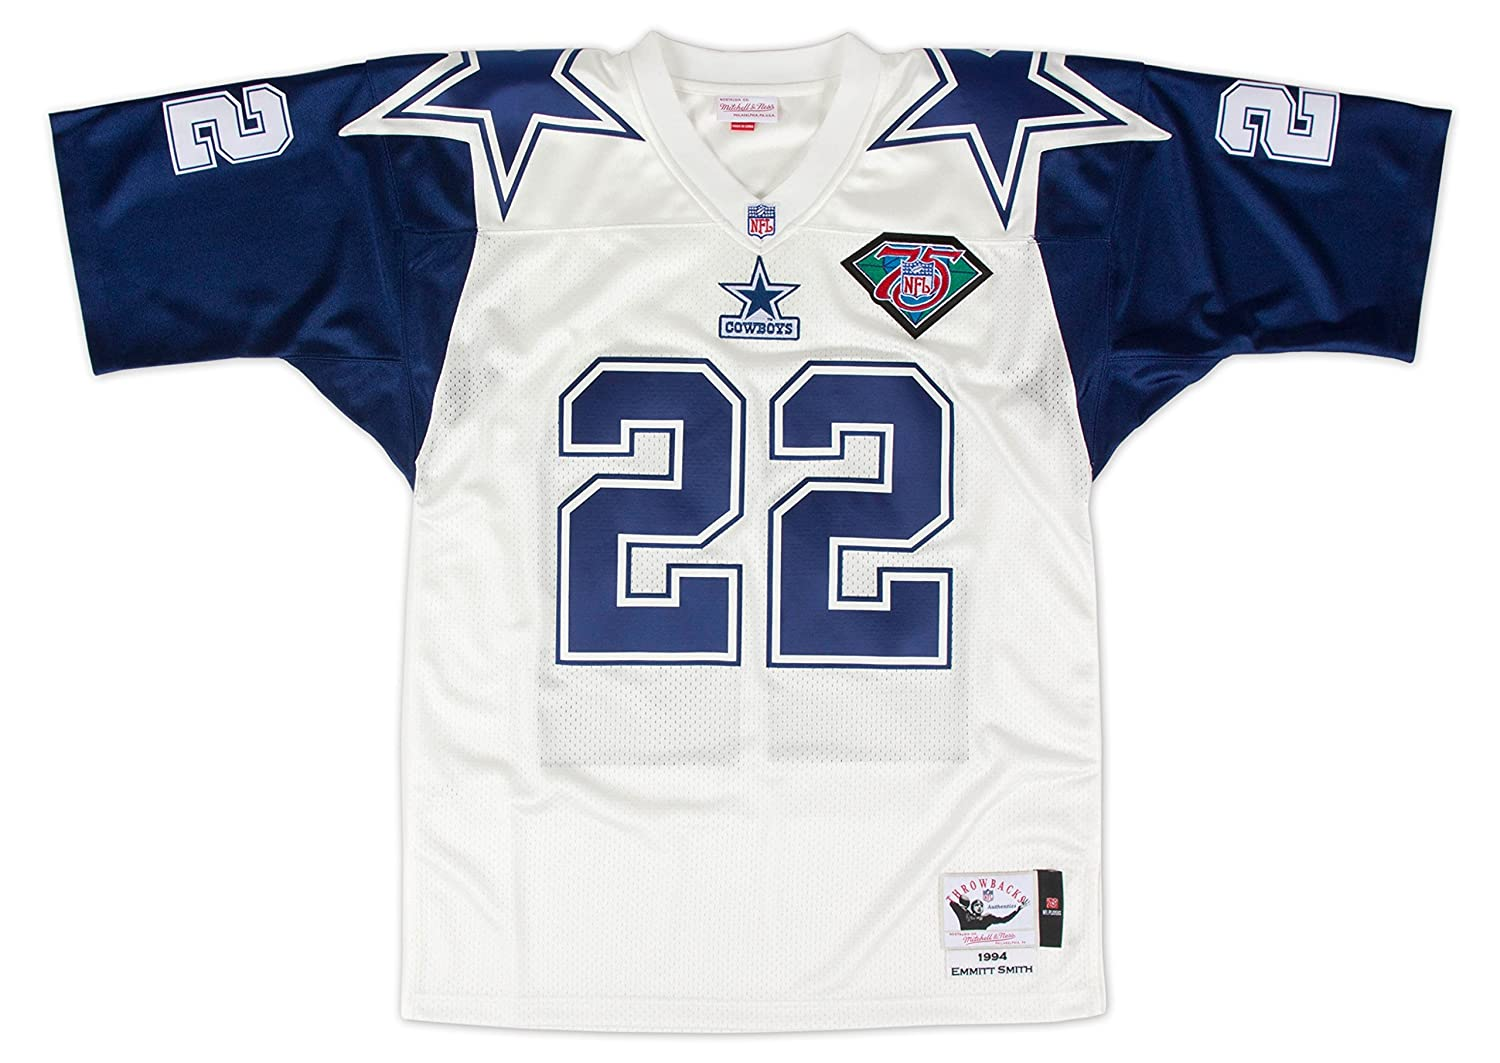 Nfl Authentic amp; Emmitt Mitchell Jersey Dallas Ness Sports Outdoors com Cowboys Amazon White Smith 1994